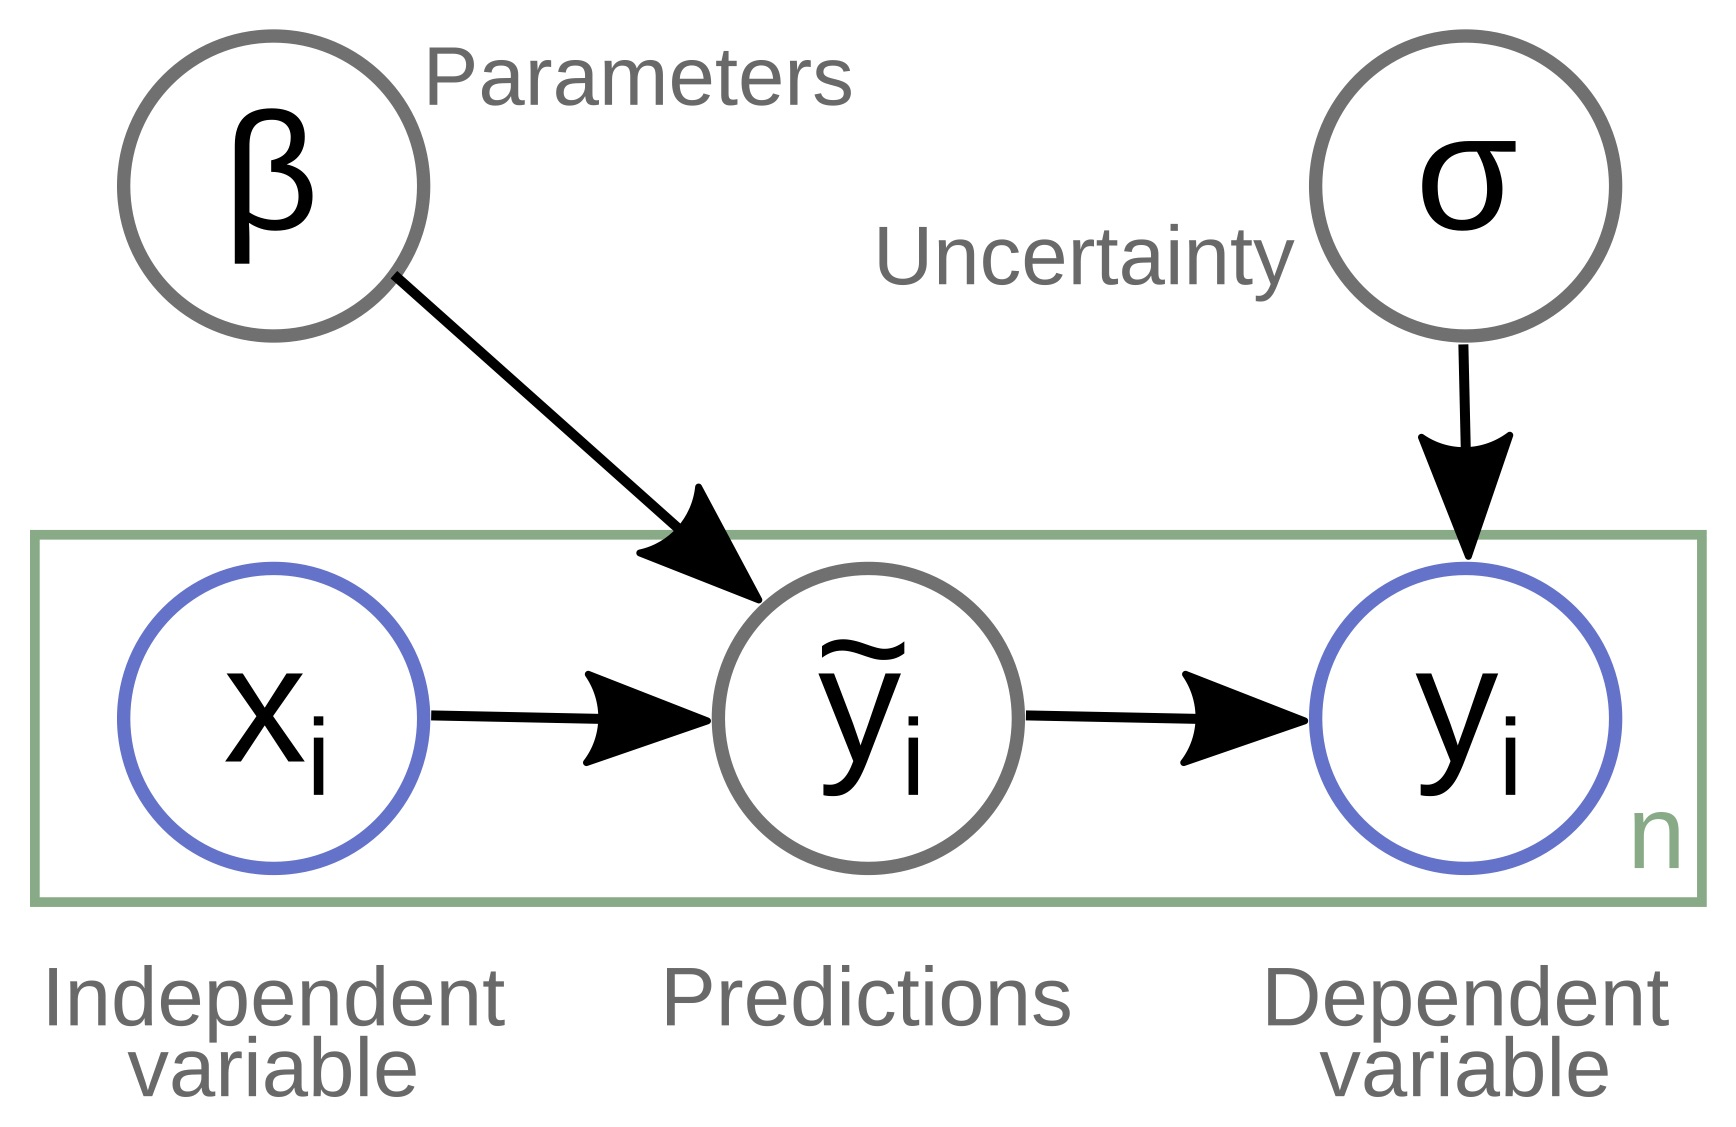 A Balanced Perspective on Prediction and Inference for Data